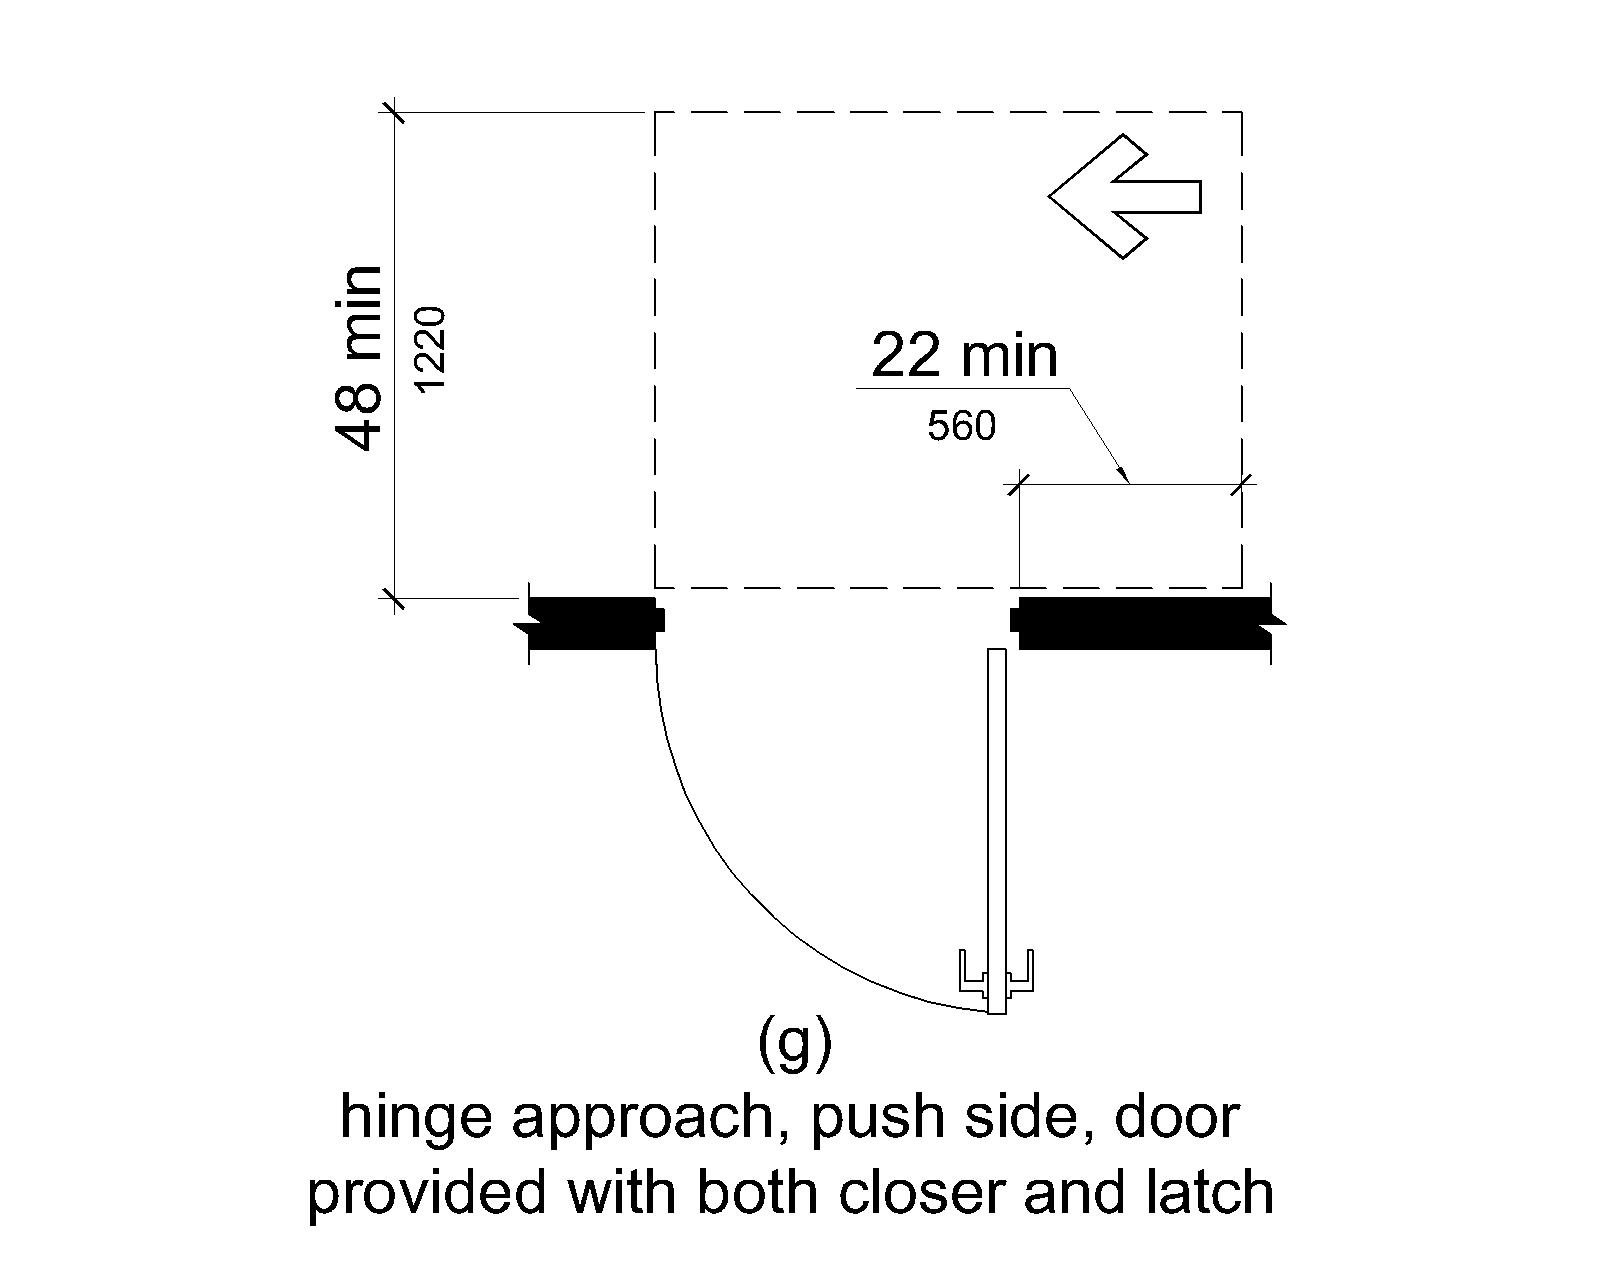 (g) On the push side, maneuvering space extends 22 inches (560 mm) from the hinge side of the doorway and 48 inches (1220 mm) minimum perpendicular to the doorway at doors with both a closer and a latch.